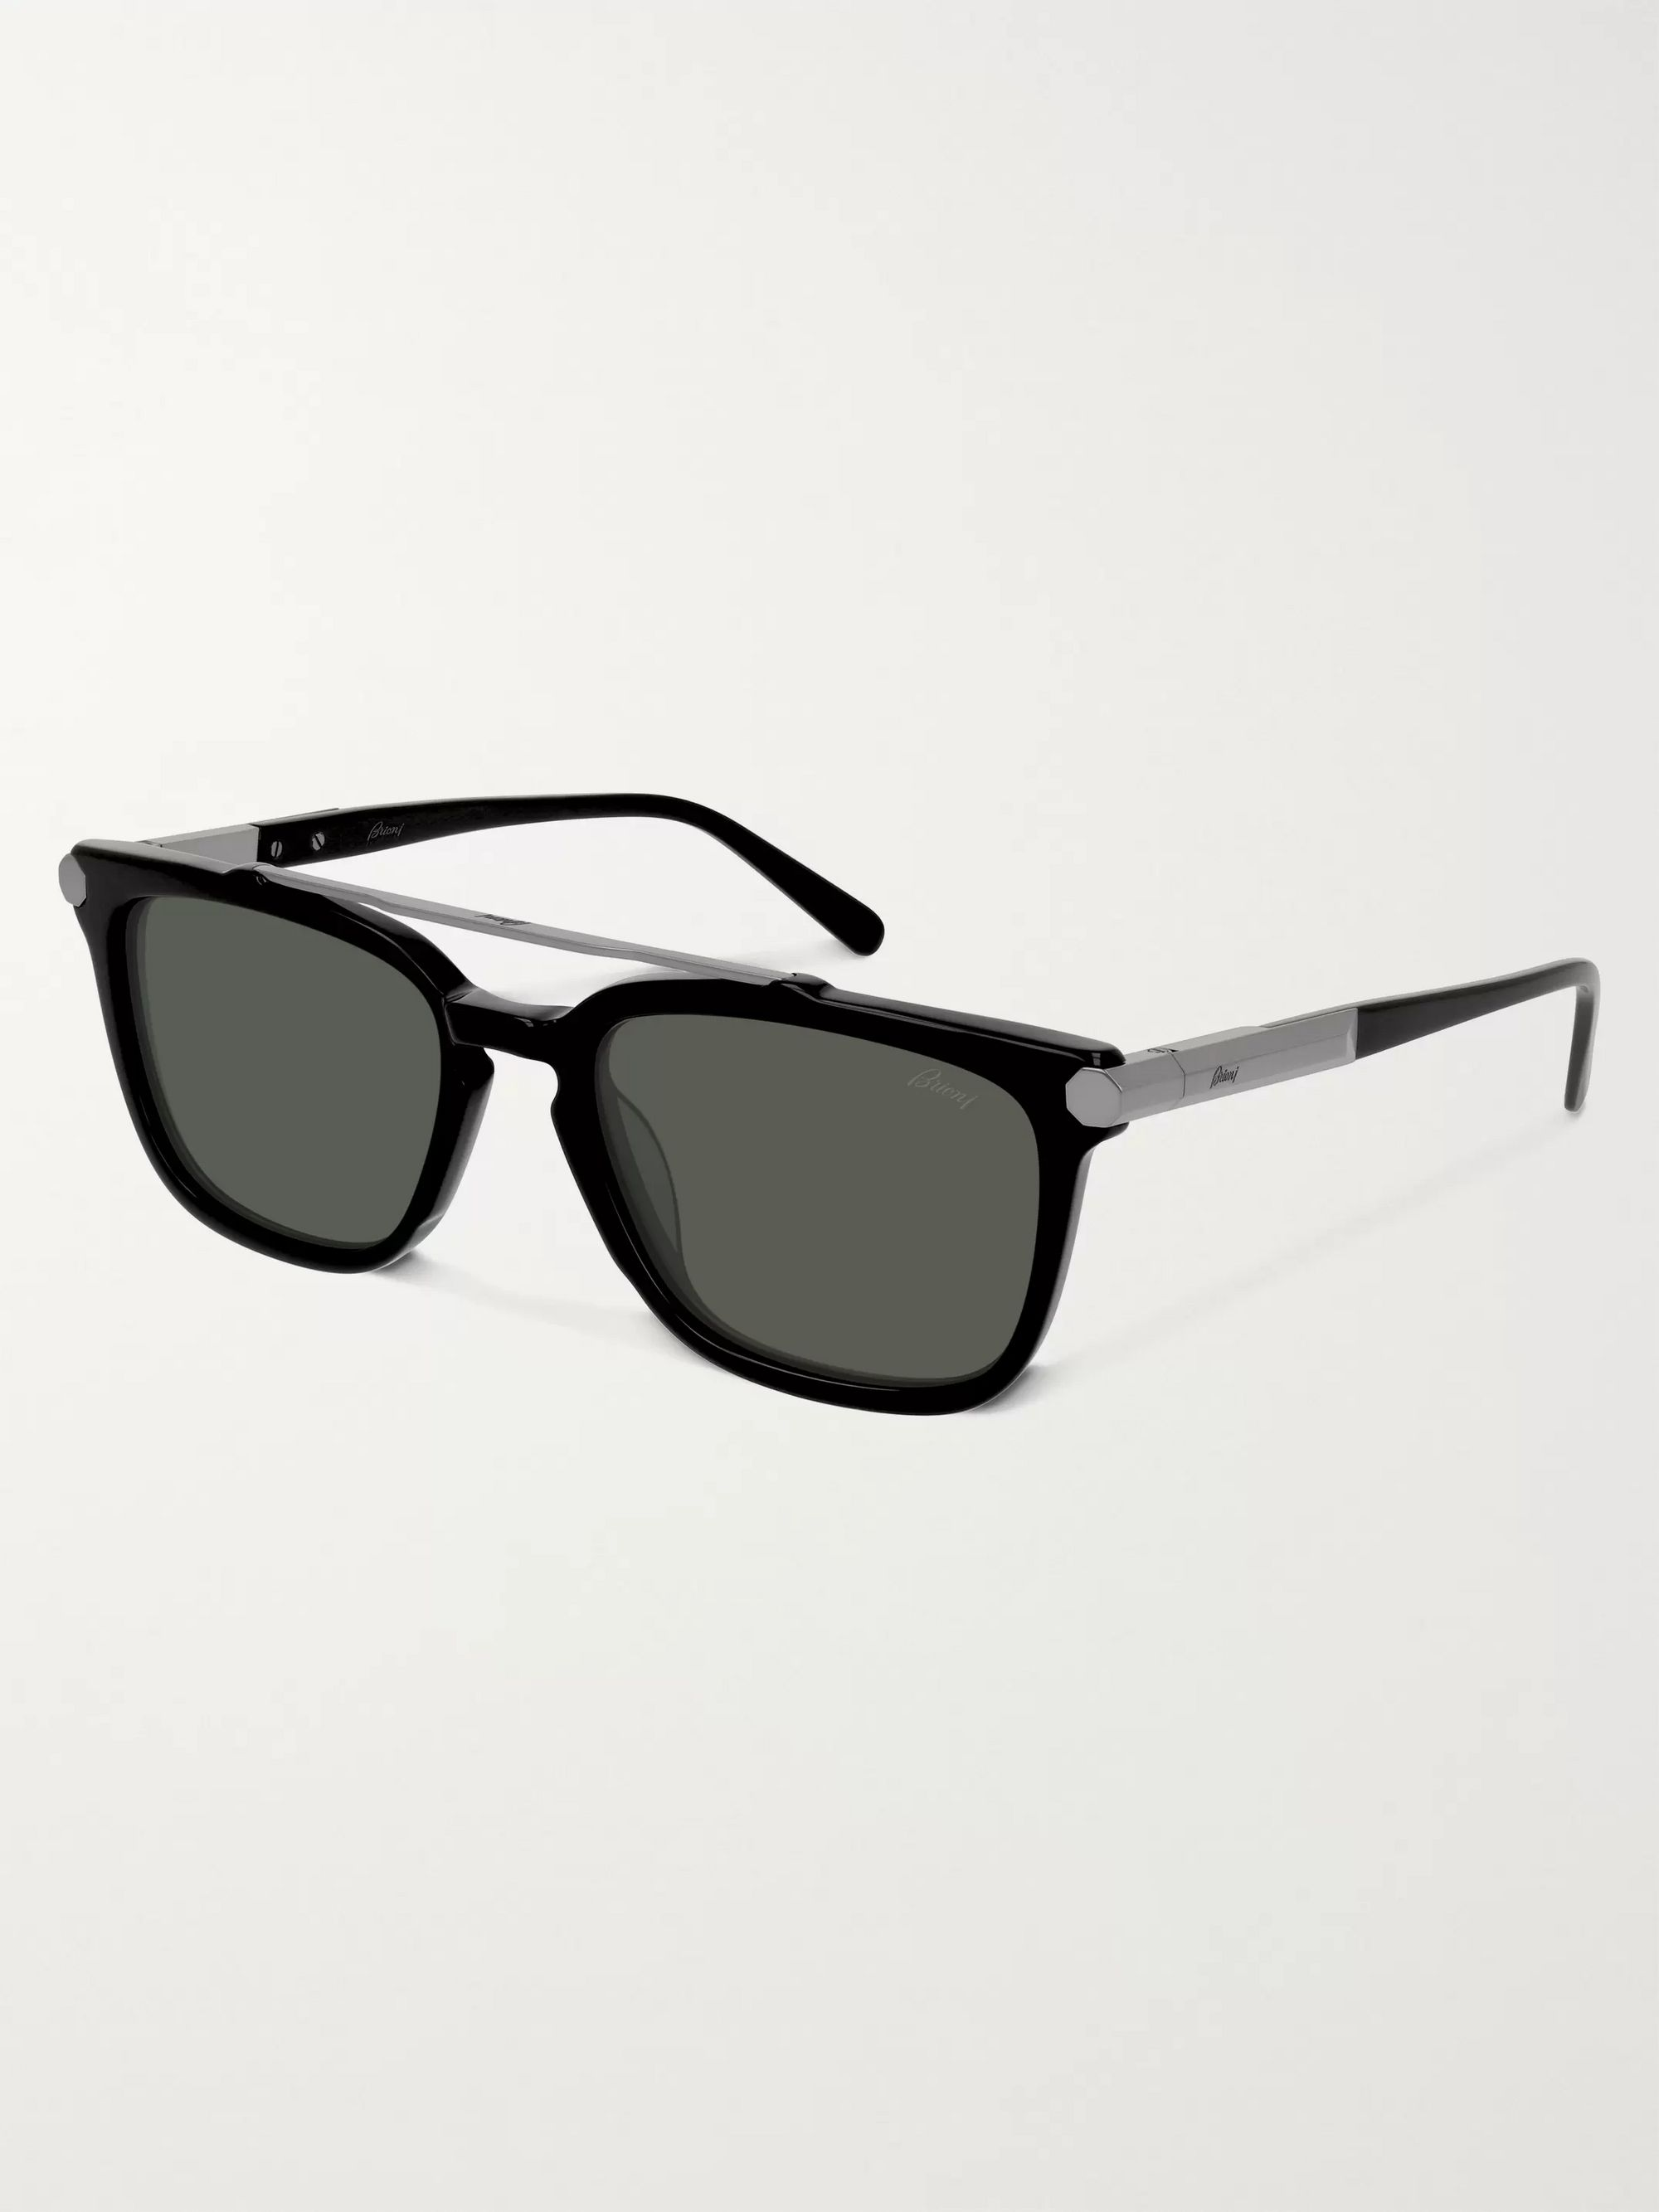 Black Square-frame Acetate And Gunmetal-tone Sunglasses | Brioni